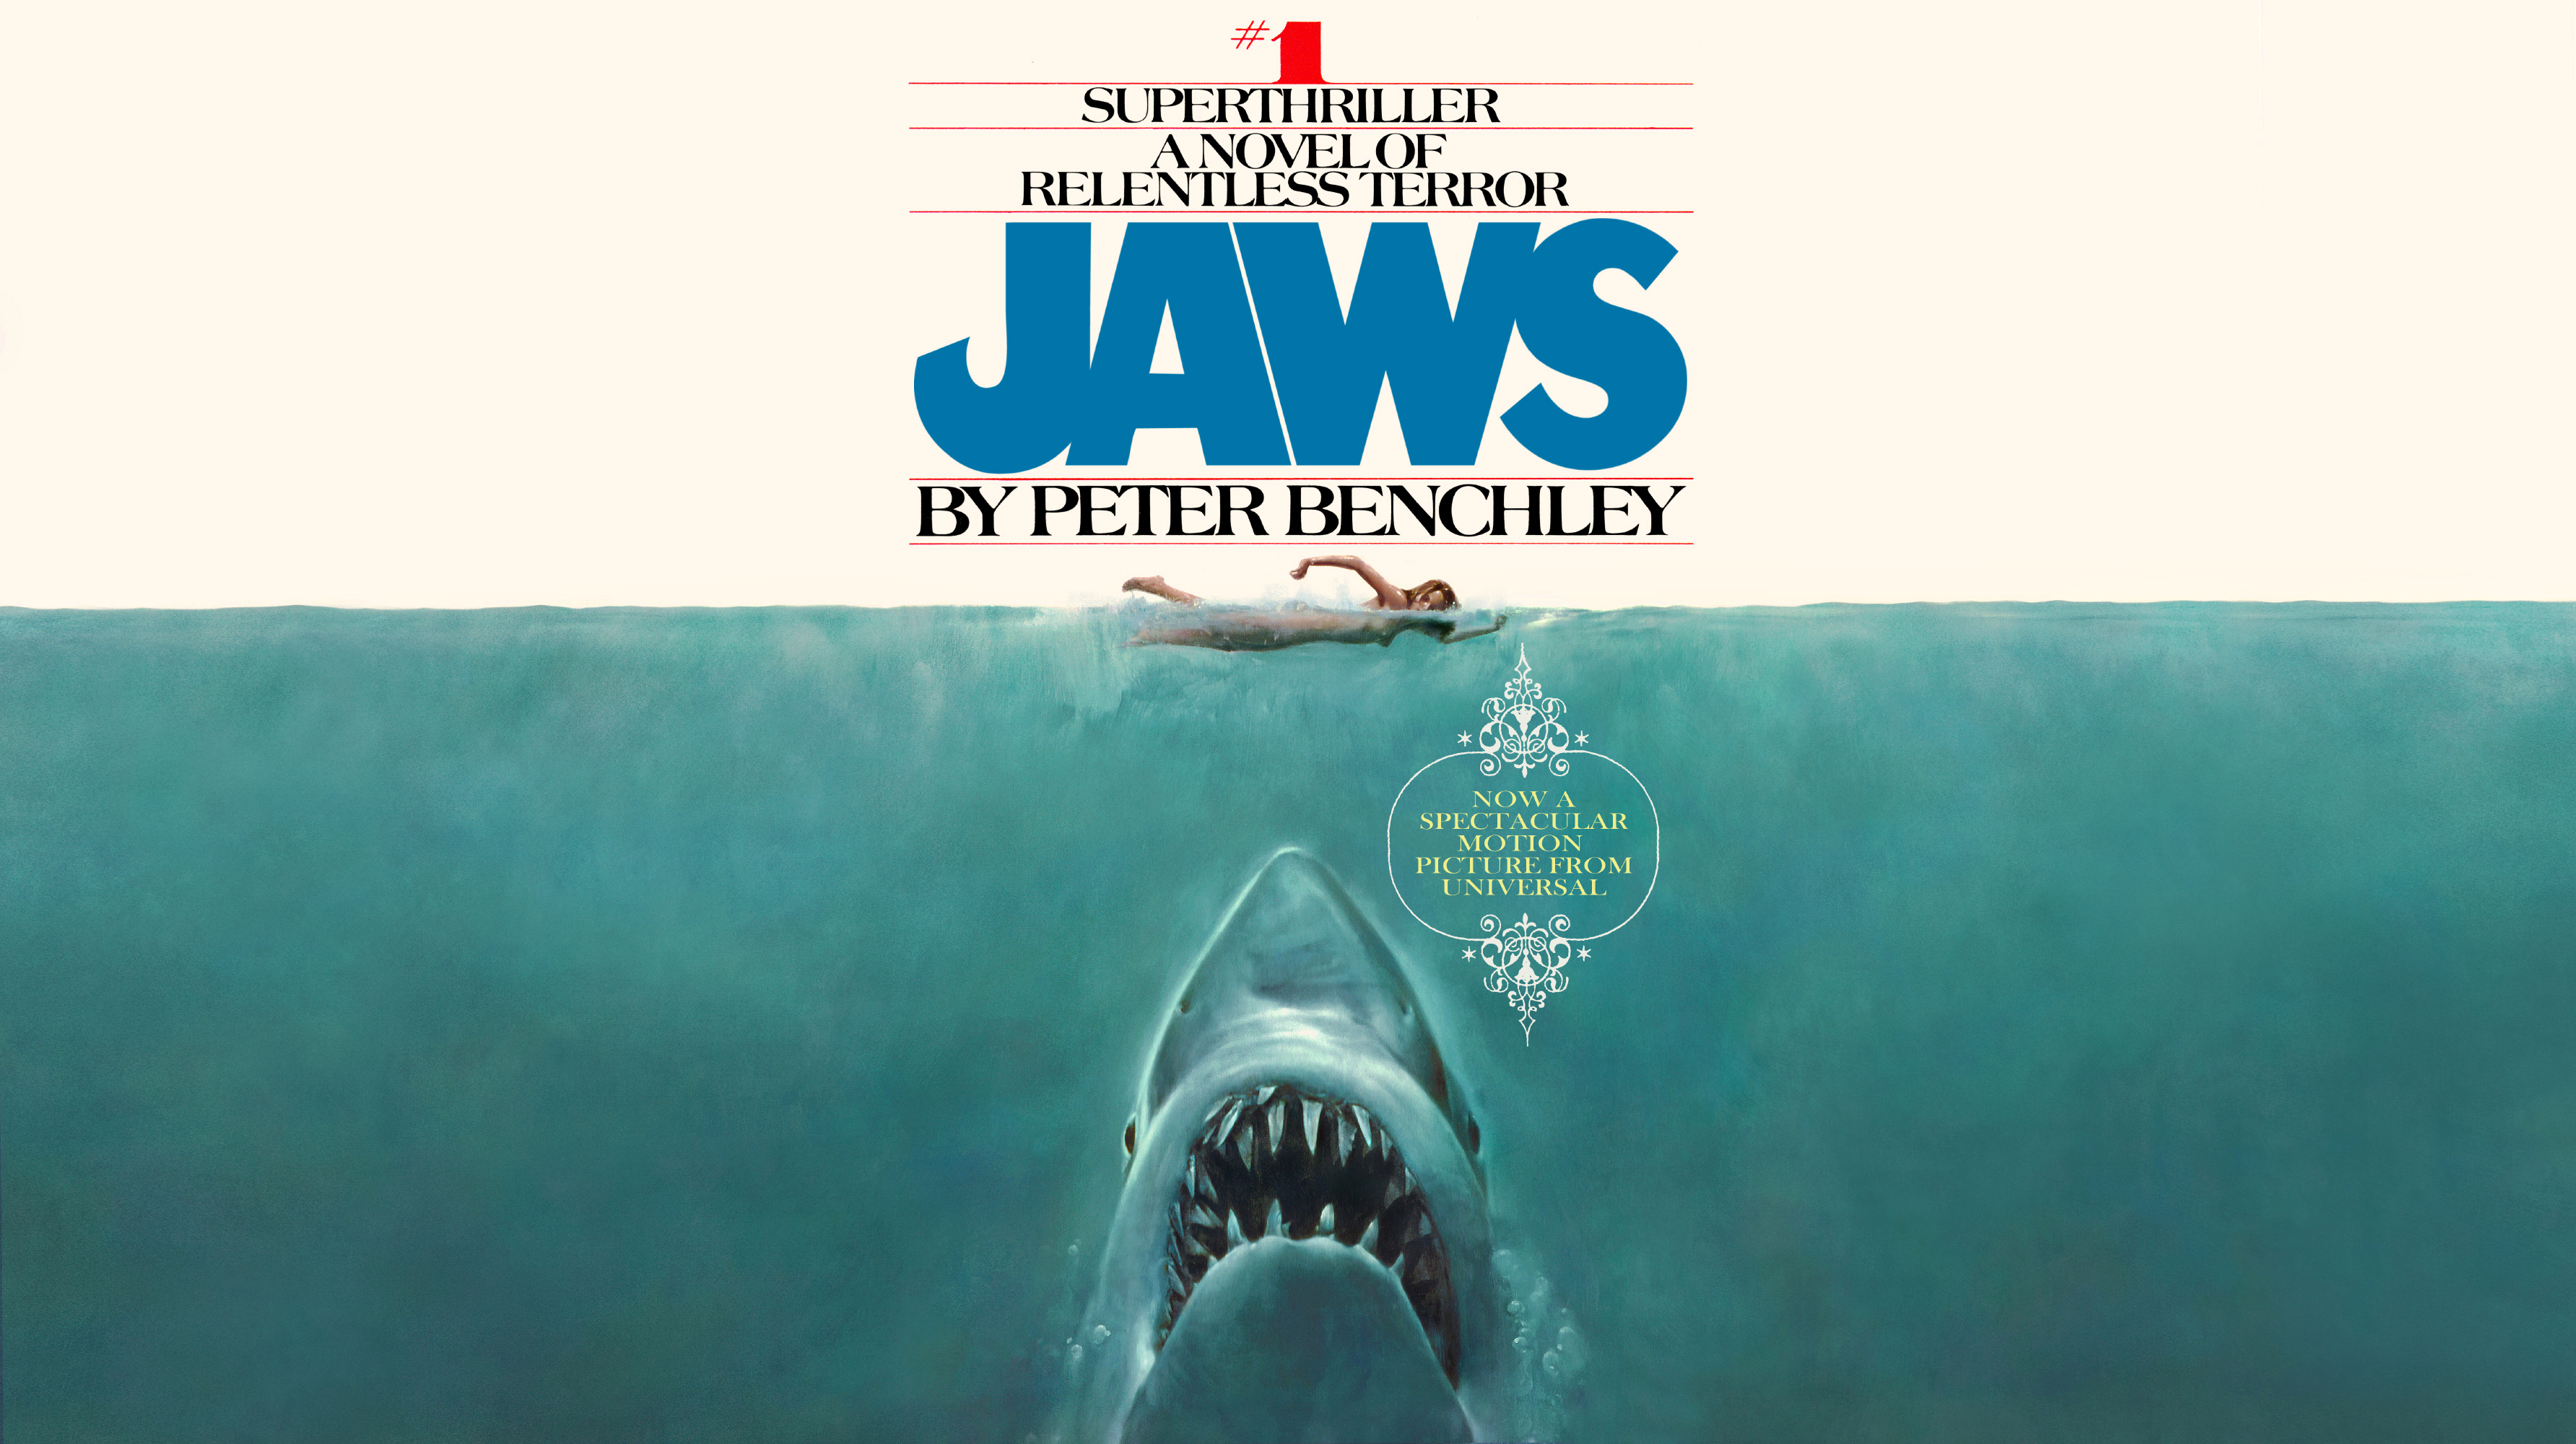 an analysis of the novel jaws written by peter benchley This peter benchley bibliography includes all books by peter benchley, including collections, editorial contributions, and more any type of book or journal citing peter benchley as a writer should appear on this list the full bibliography of the author peter benchley below includes book jacket images whenever possible.